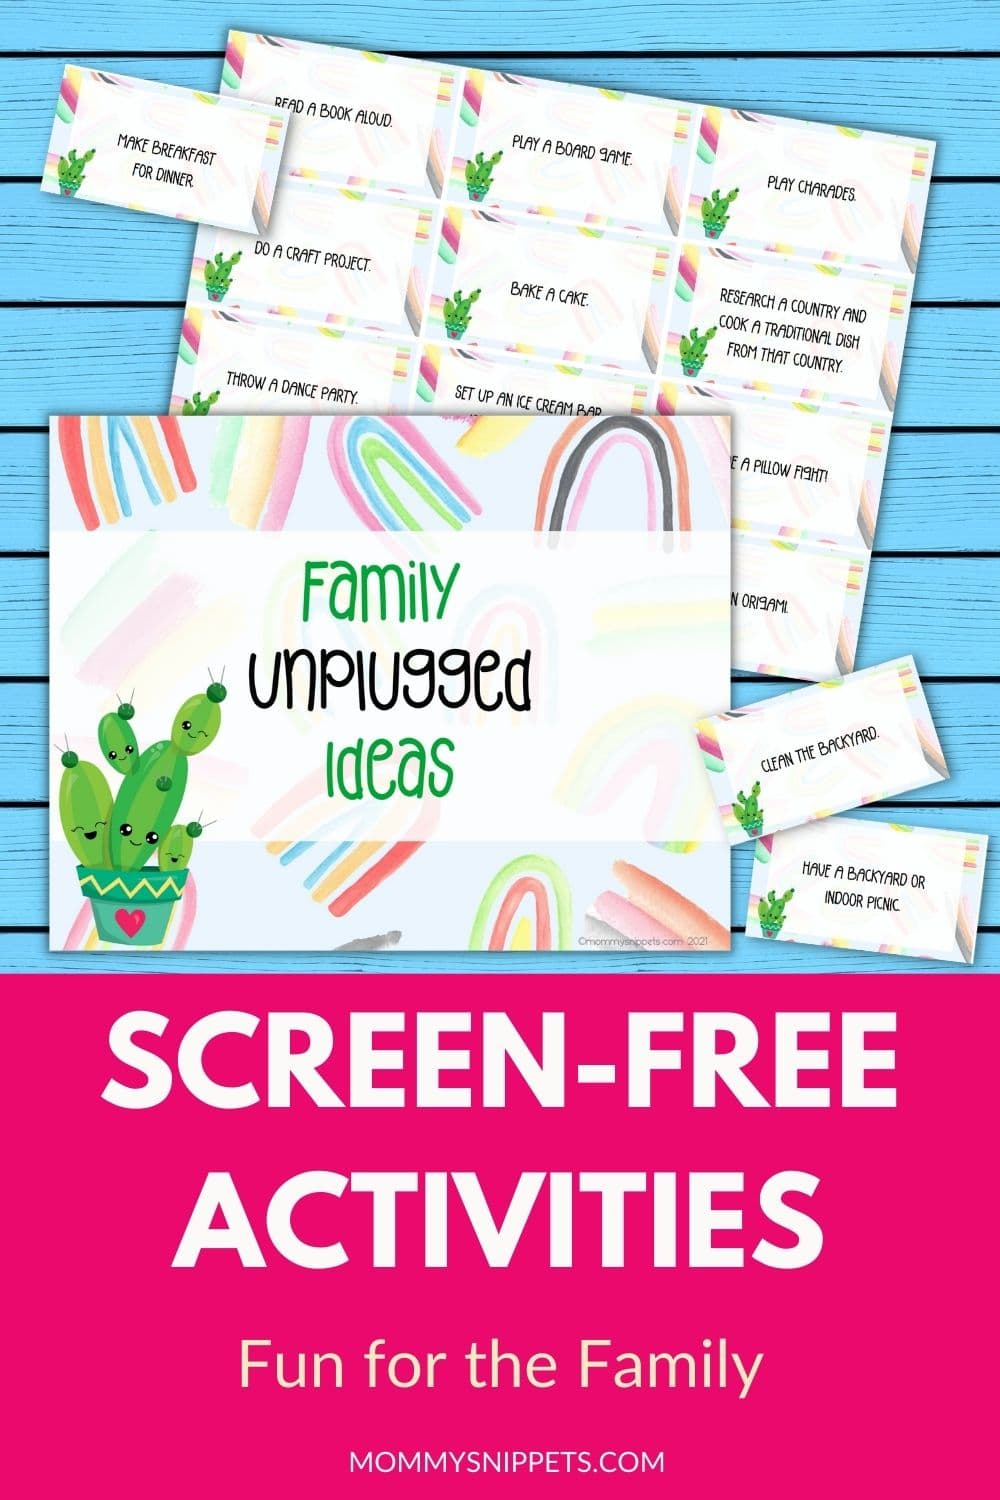 Family Unplugged Ideas- My Favorite Screen-Free Activities for Families